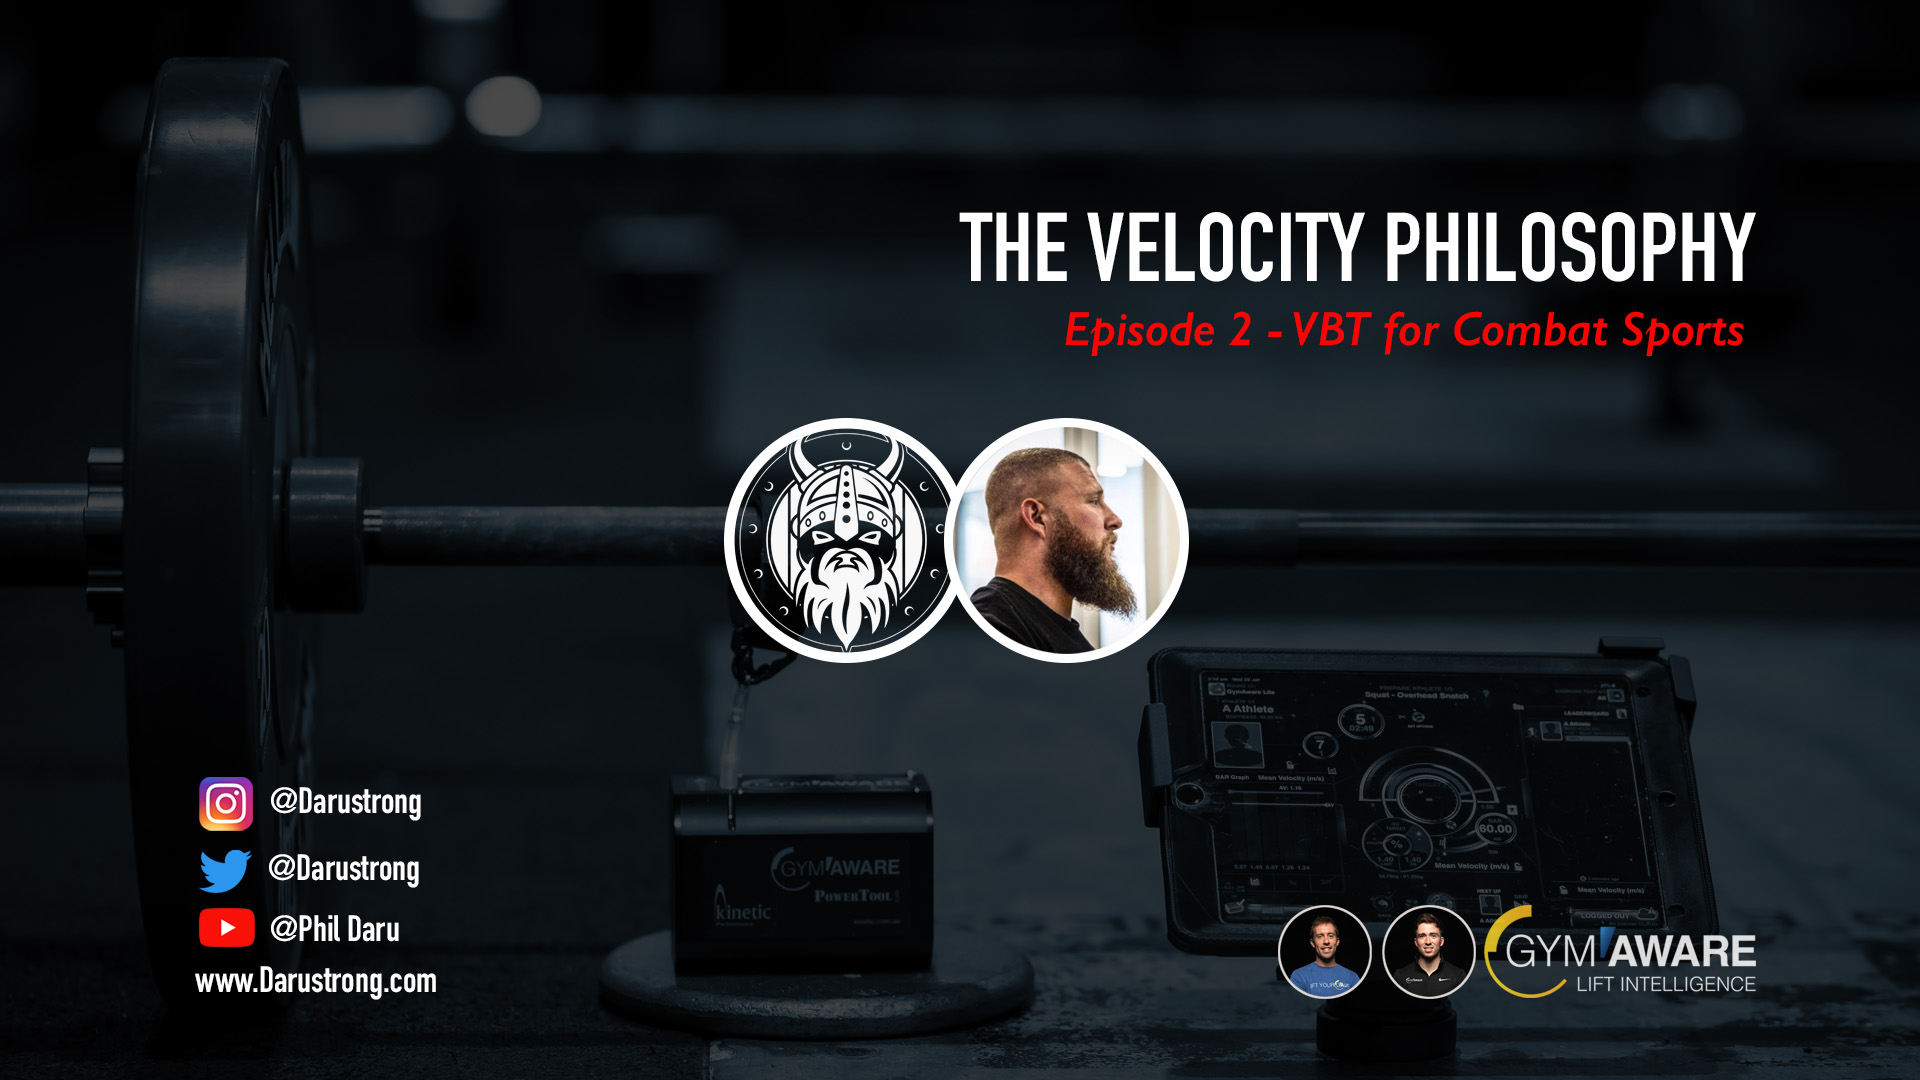 Phil Daru Velocity Based Training for combat sports